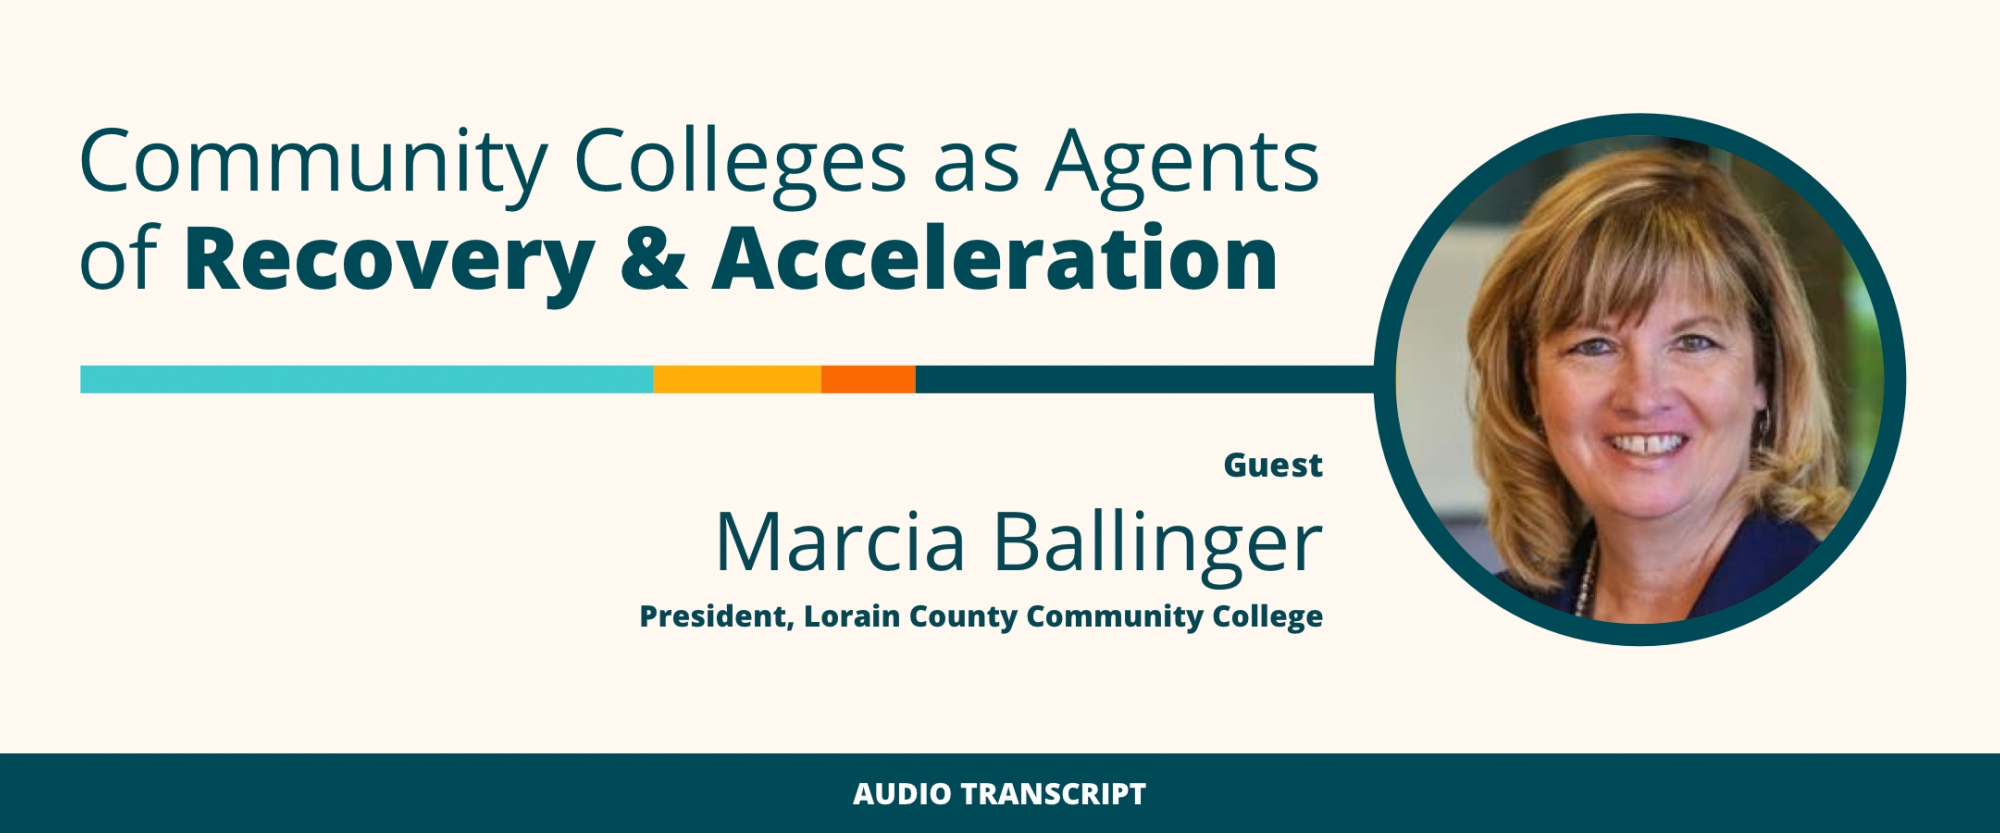 Weekly Wisdom Episode 16: Transcript of Conversation With Marcia Ballinger, Lorain County Community College President